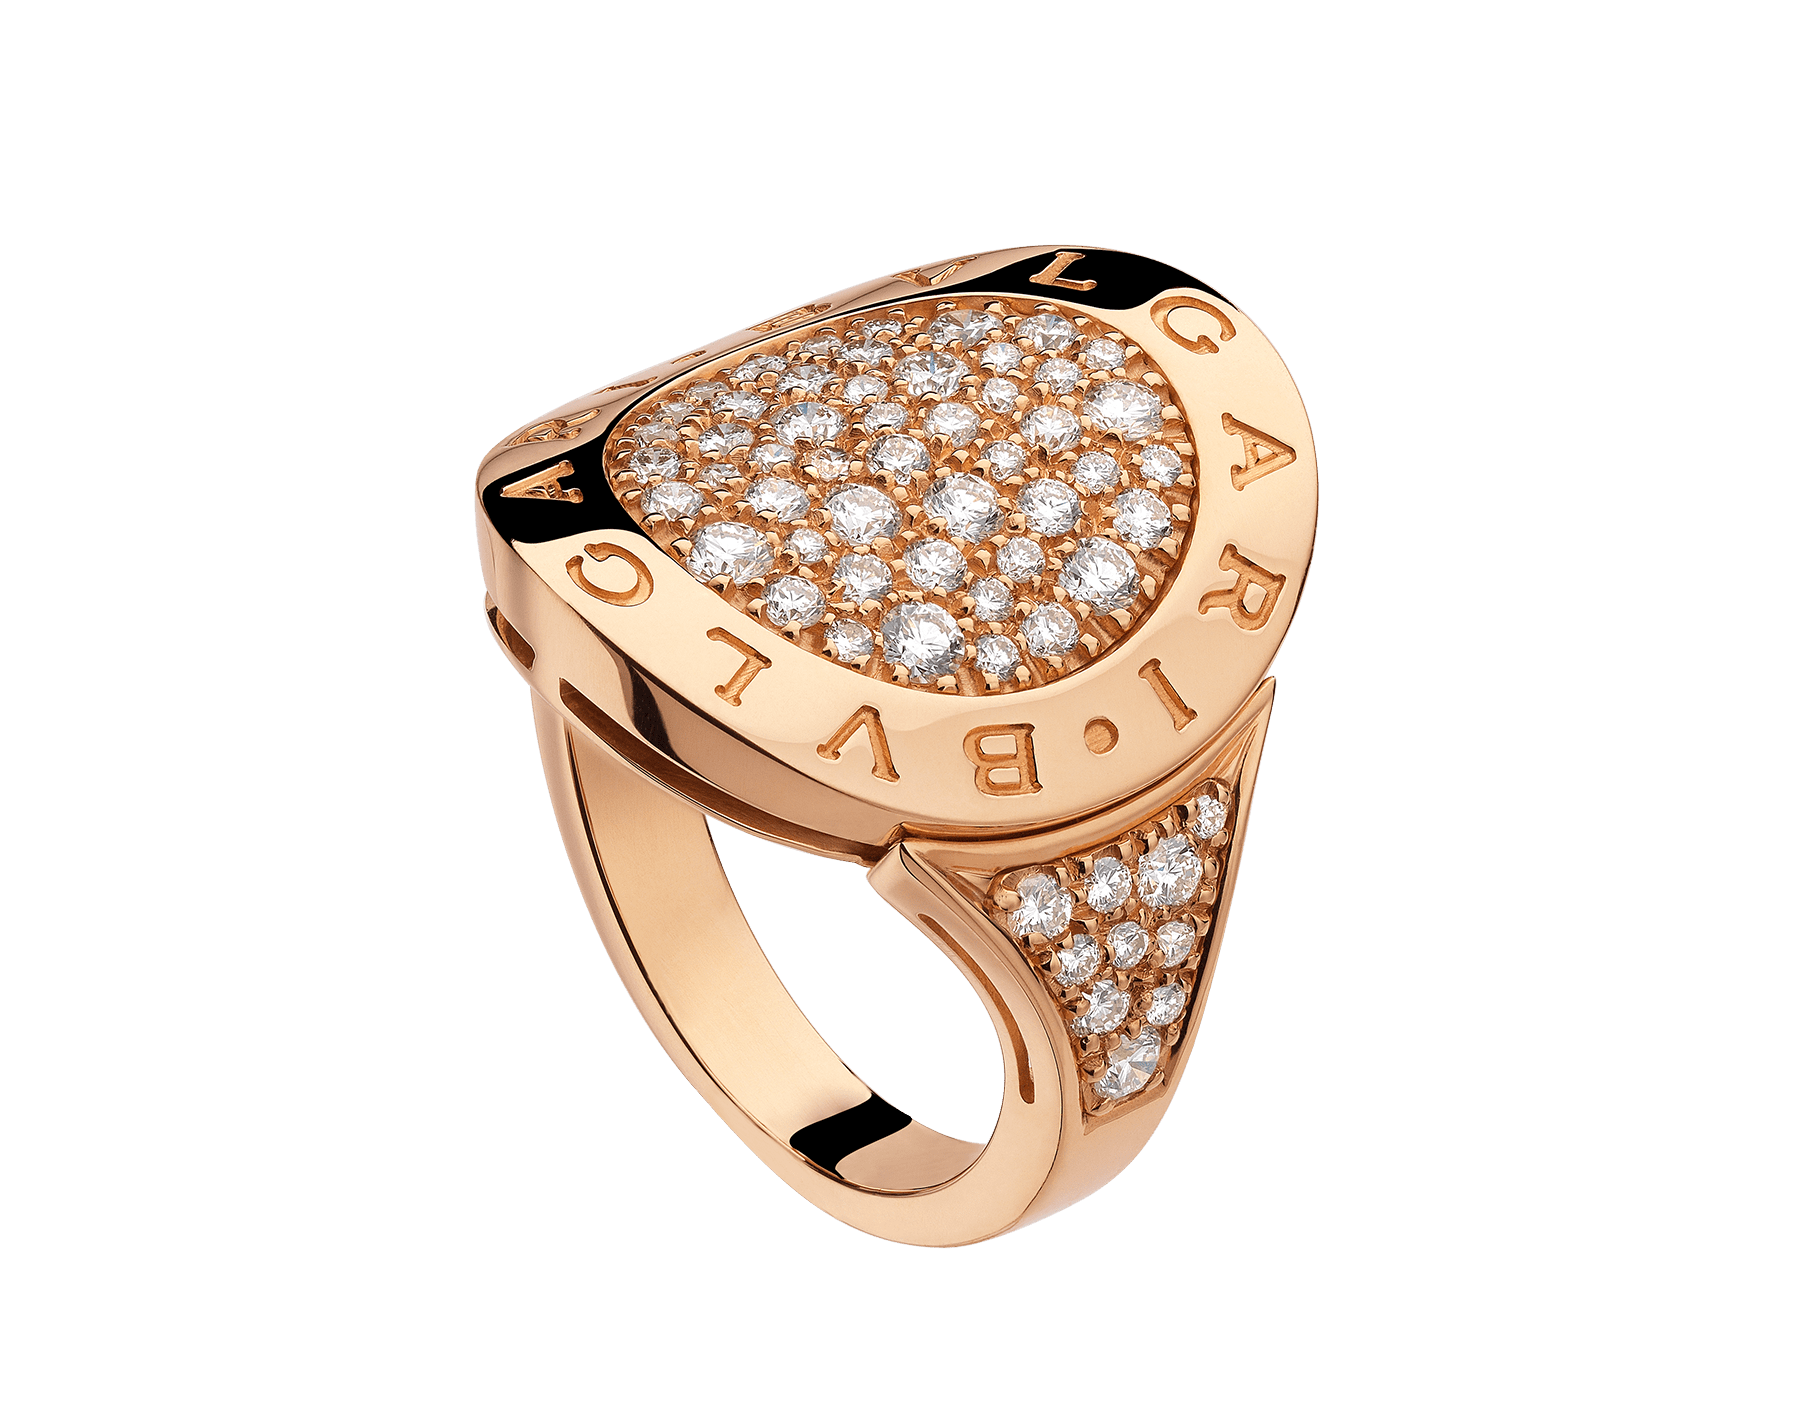 Bague BVLGARI BVLGARI en or rose 18 K pavé diamants AN854862 image 1